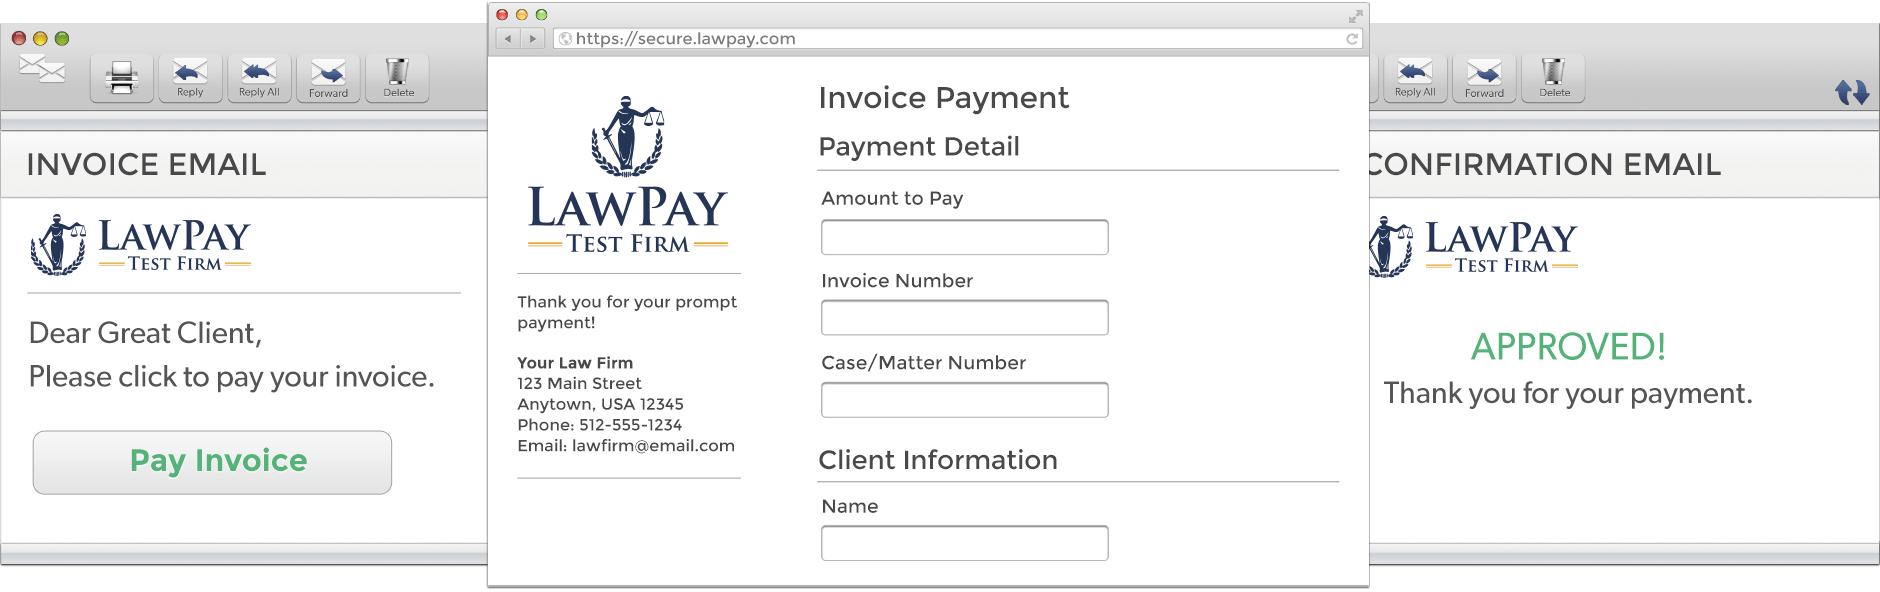 Trust Your Transactions to LawPay